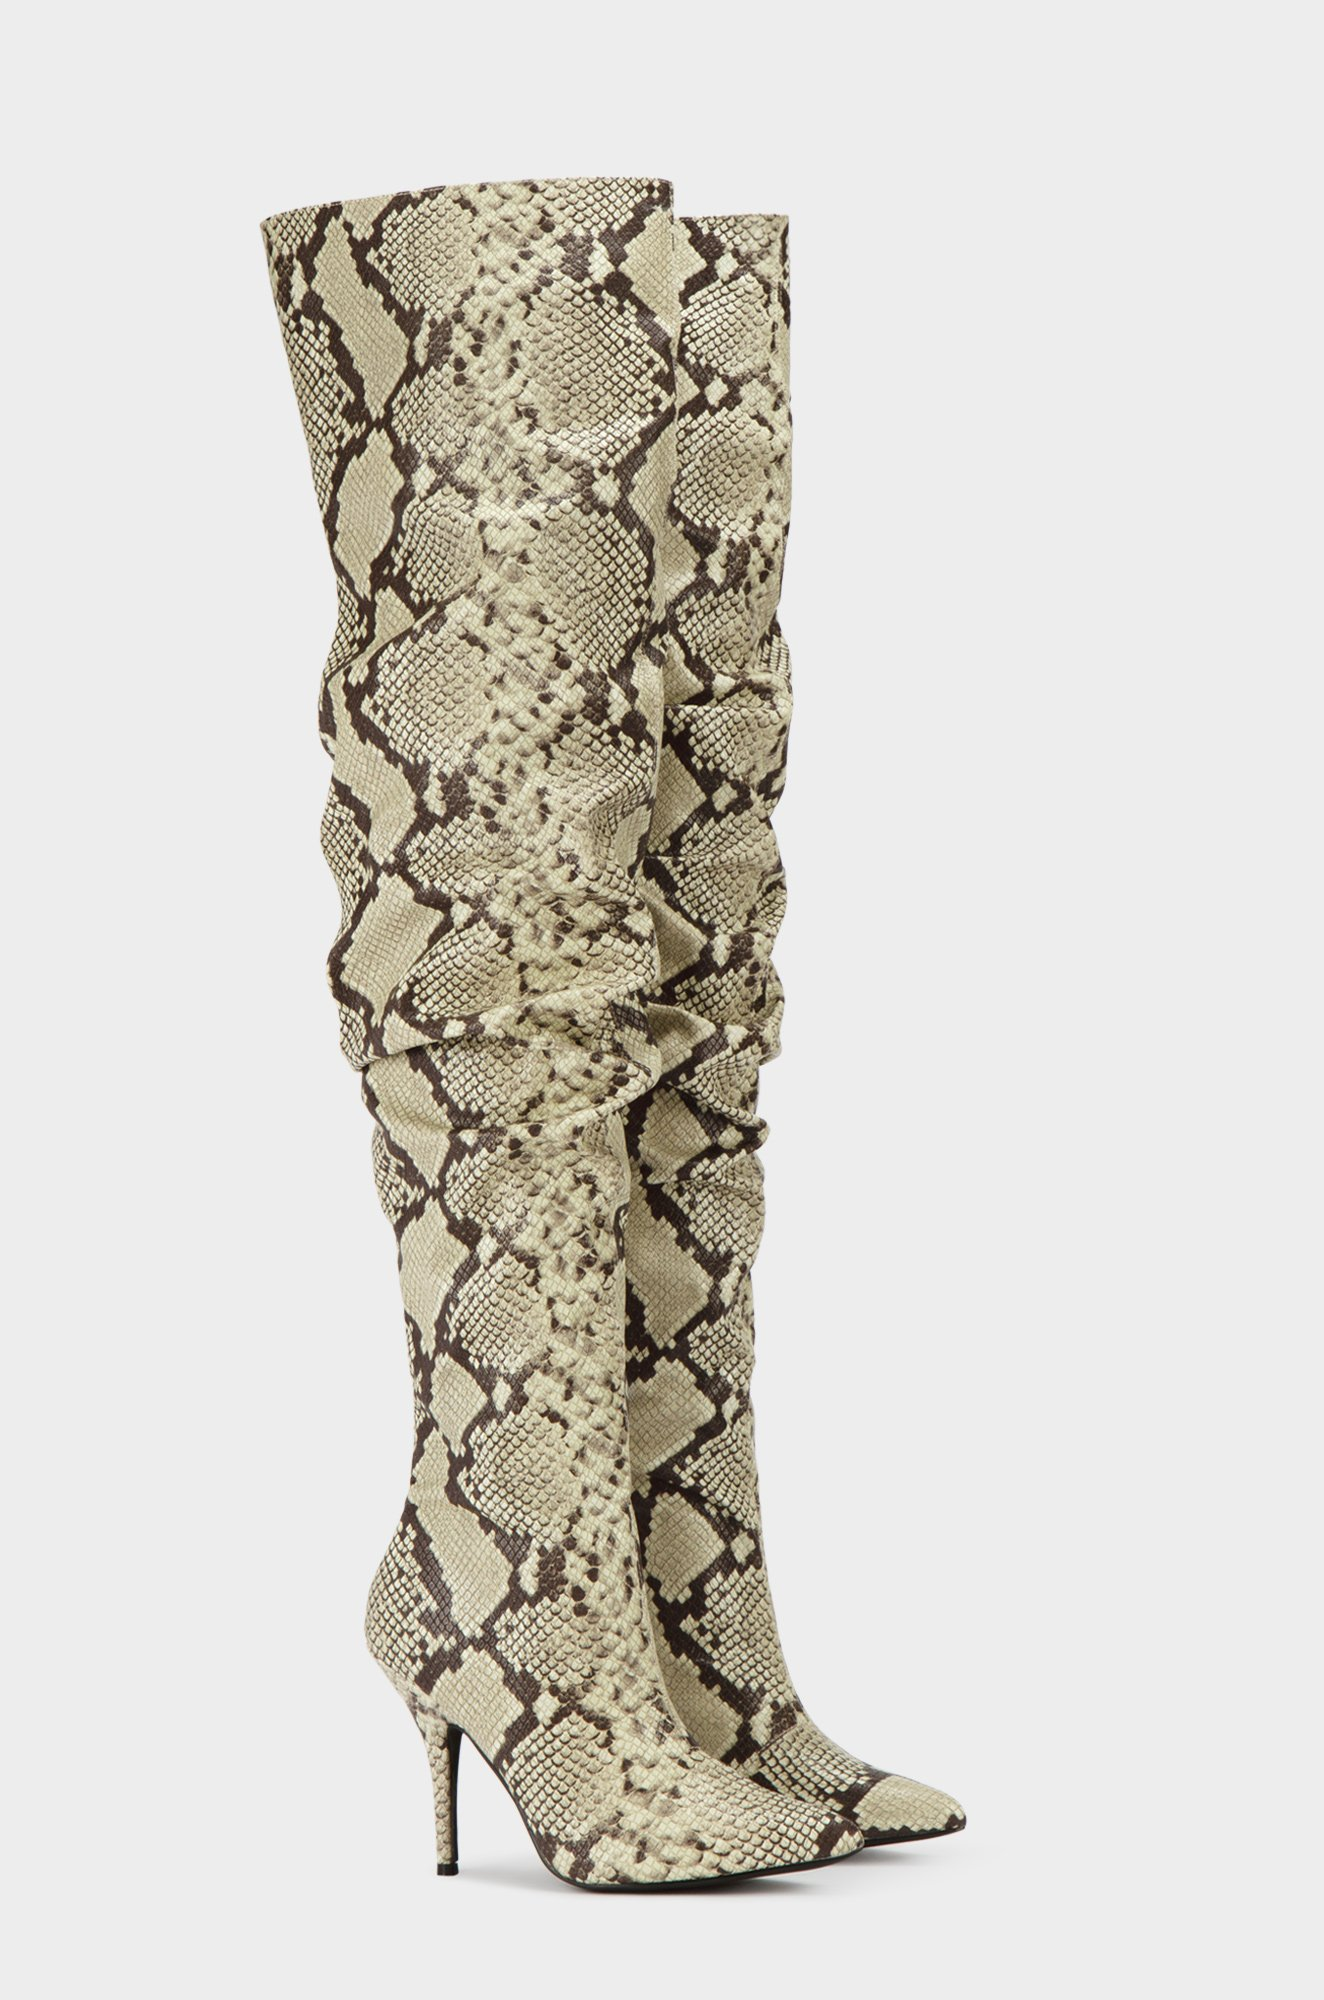 Cape-Robbin-Bown-Snake-Thigh-High-Slouch-Pointed-Toe-Over-The-Knee-Stiletto-Boot thumbnail 38